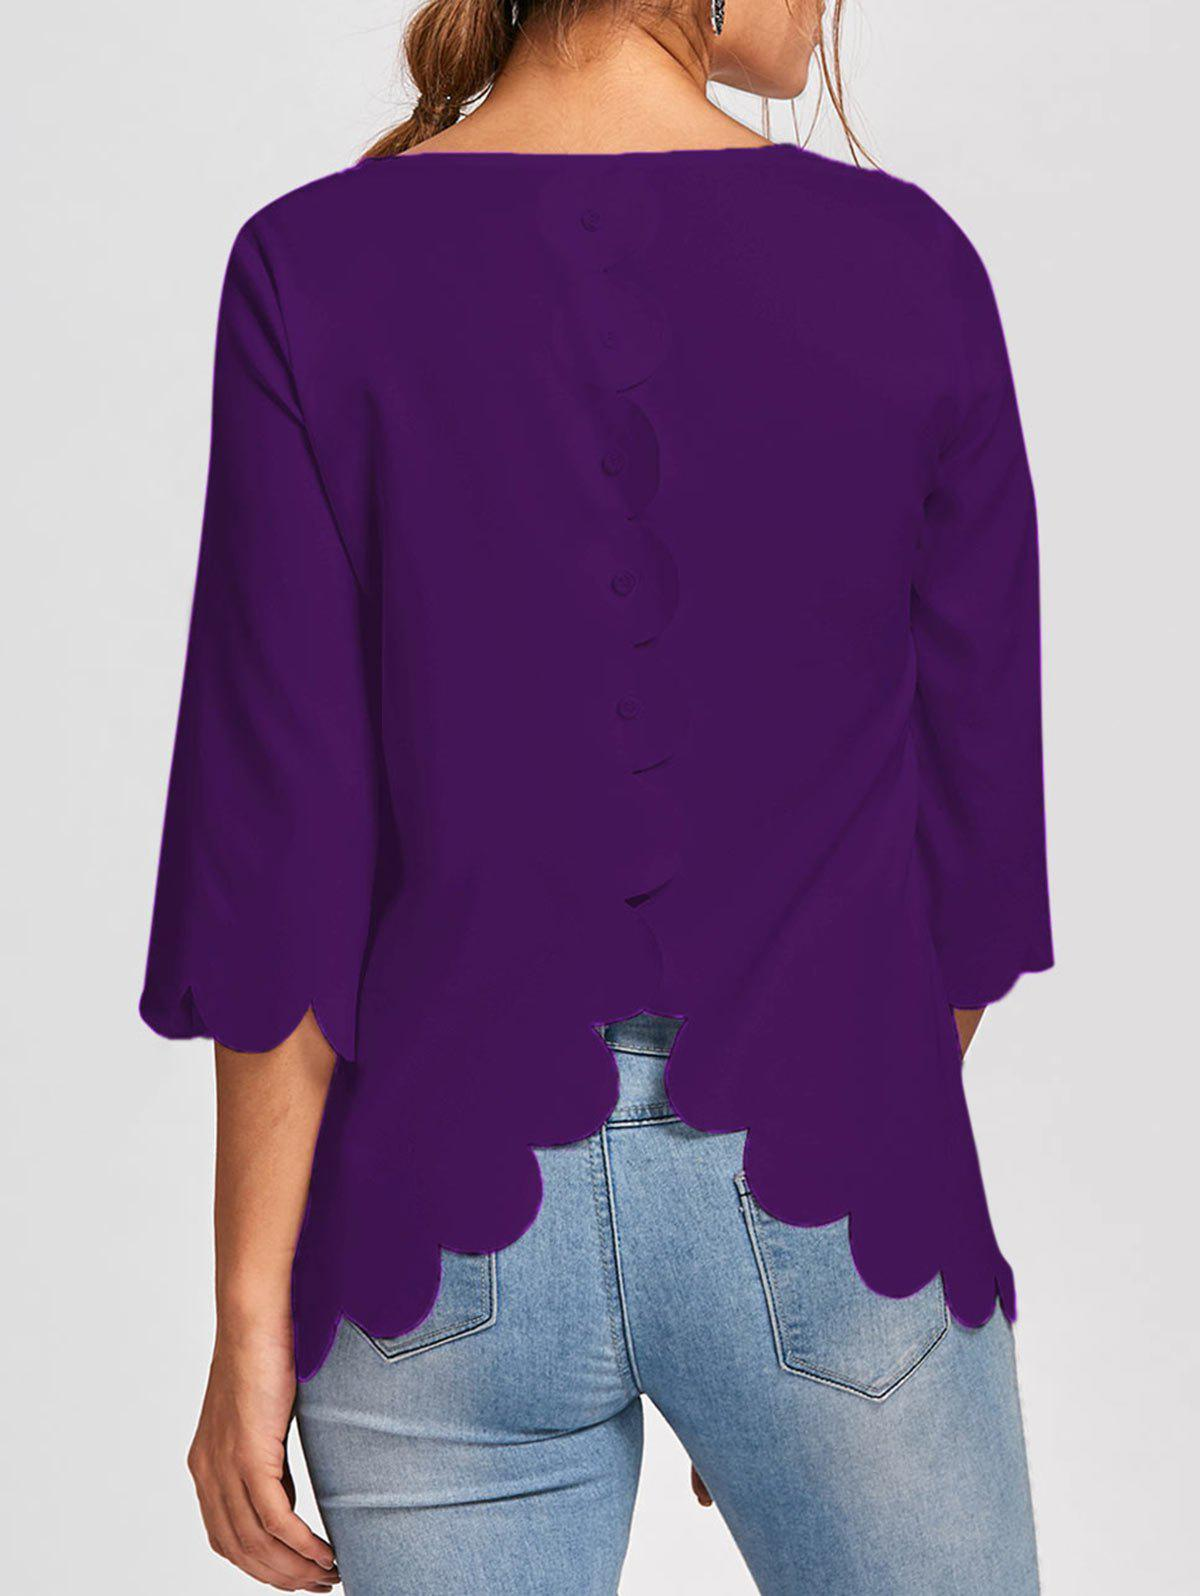 Button Embellished Scalloped Edge BlouseWOMEN<br><br>Size: M; Color: PURPLE; Occasion: Casual,Evening,Party; Style: Fashion; Material: Polyester; Shirt Length: Long; Sleeve Length: Full; Collar: Round Neck; Pattern Type: Solid; Embellishment: Button; Season: Fall,Spring,Summer; Weight: 0.1700kg; Package Contents: 1 x Blouse;